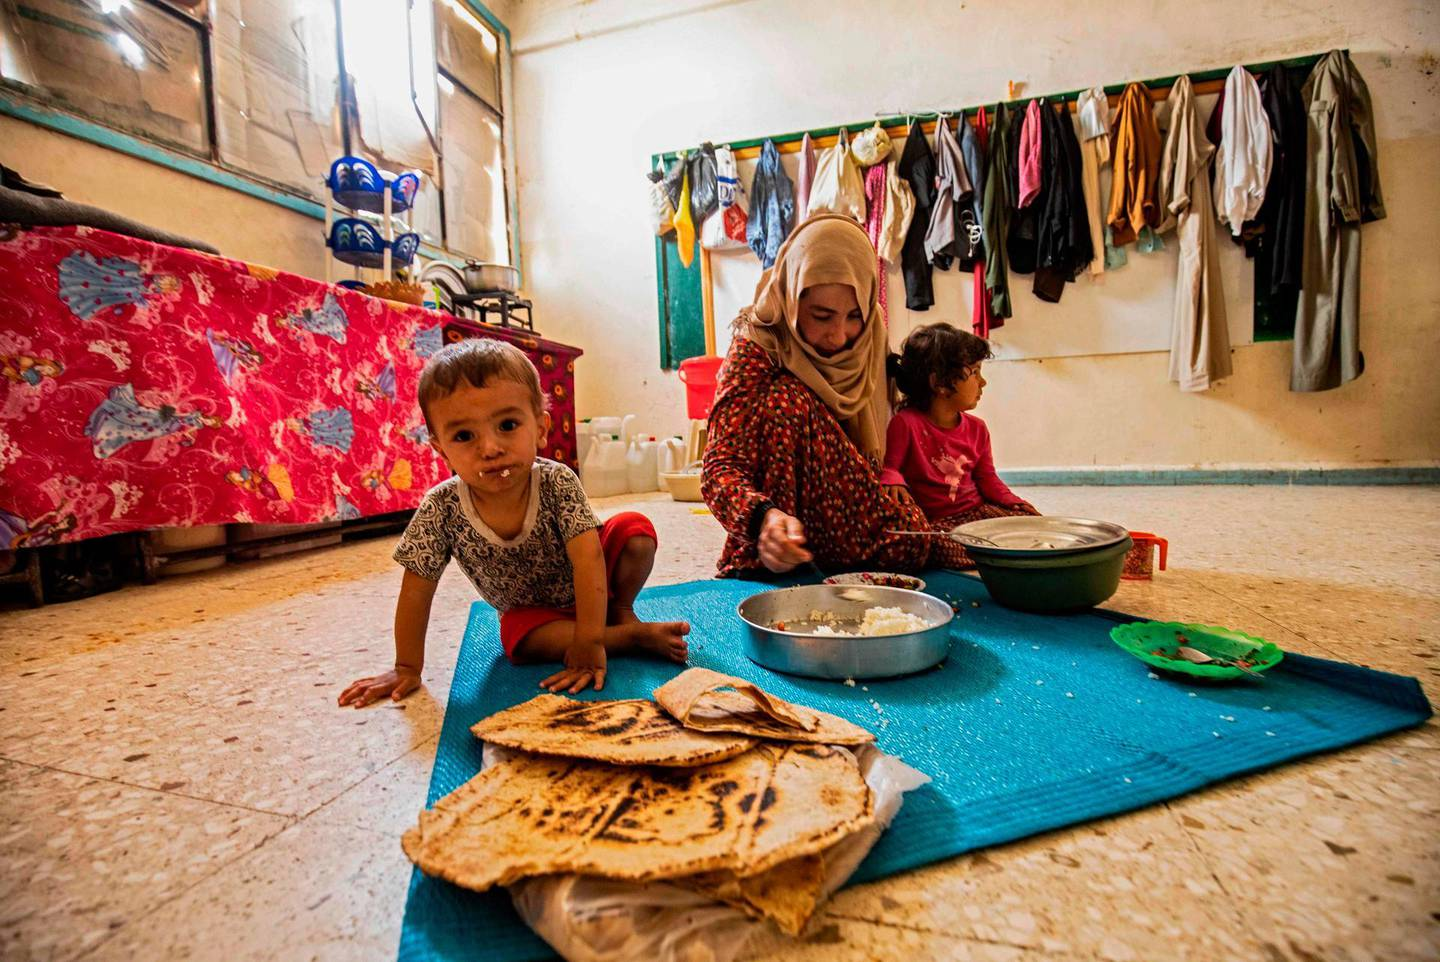 A woman feeds a child while sitting on the floor at a former classroom in a school building where Syrians -- displaced from the area of Ras al-Ain by the Turkish offensive on the northeast -- are staying in the city of Hasakah, on June 30, 2020.  / AFP / Delil SOULEIMAN